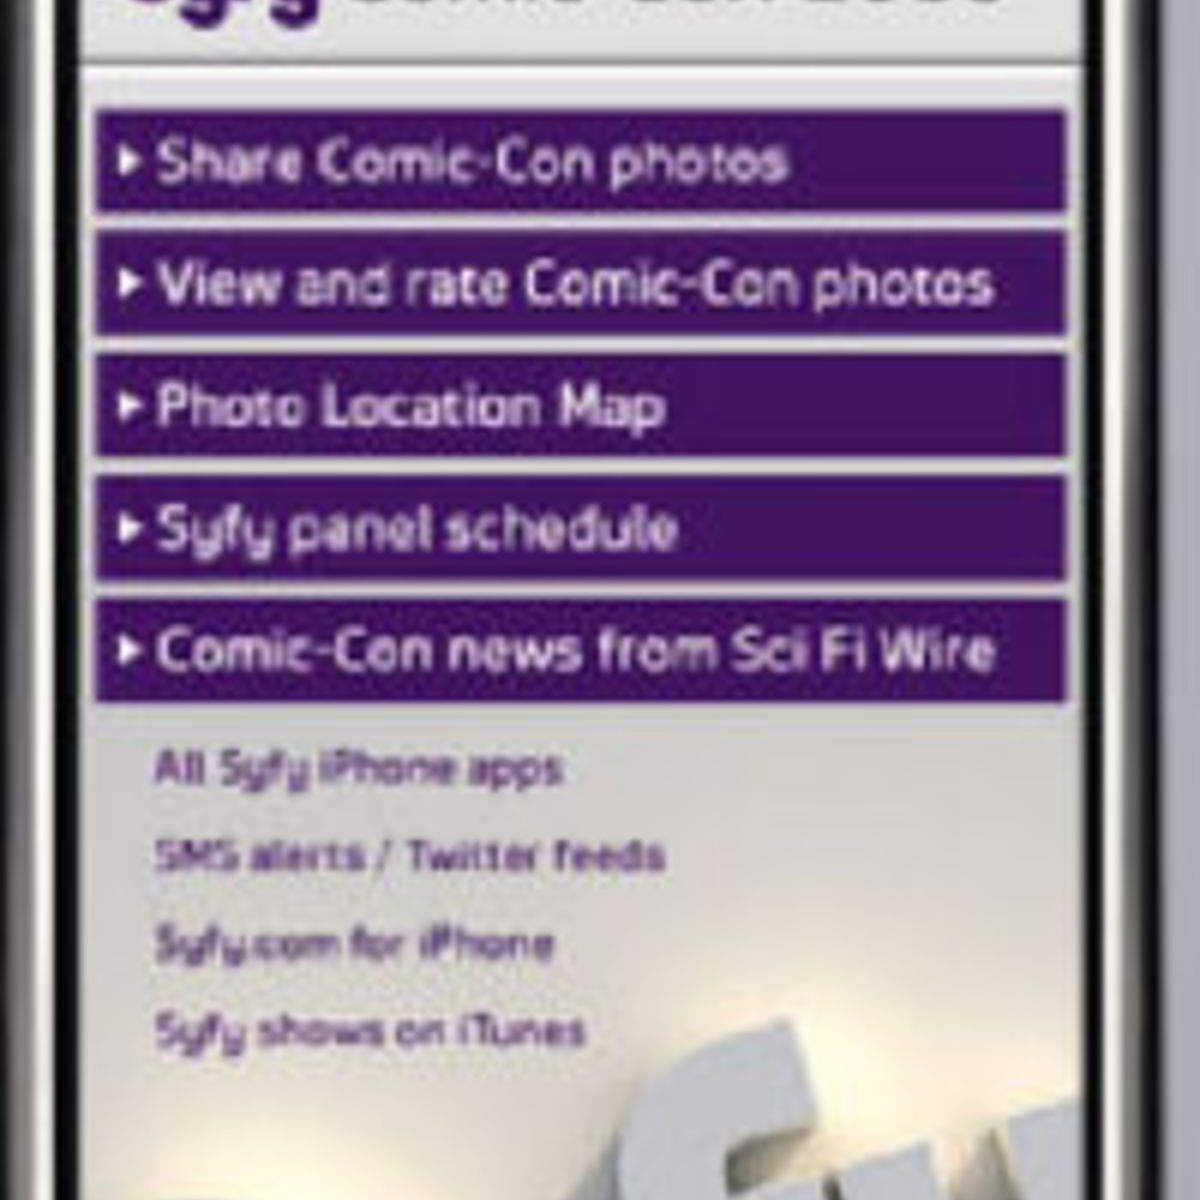 get the syfy comic-con iphone app for free! | syfy wire